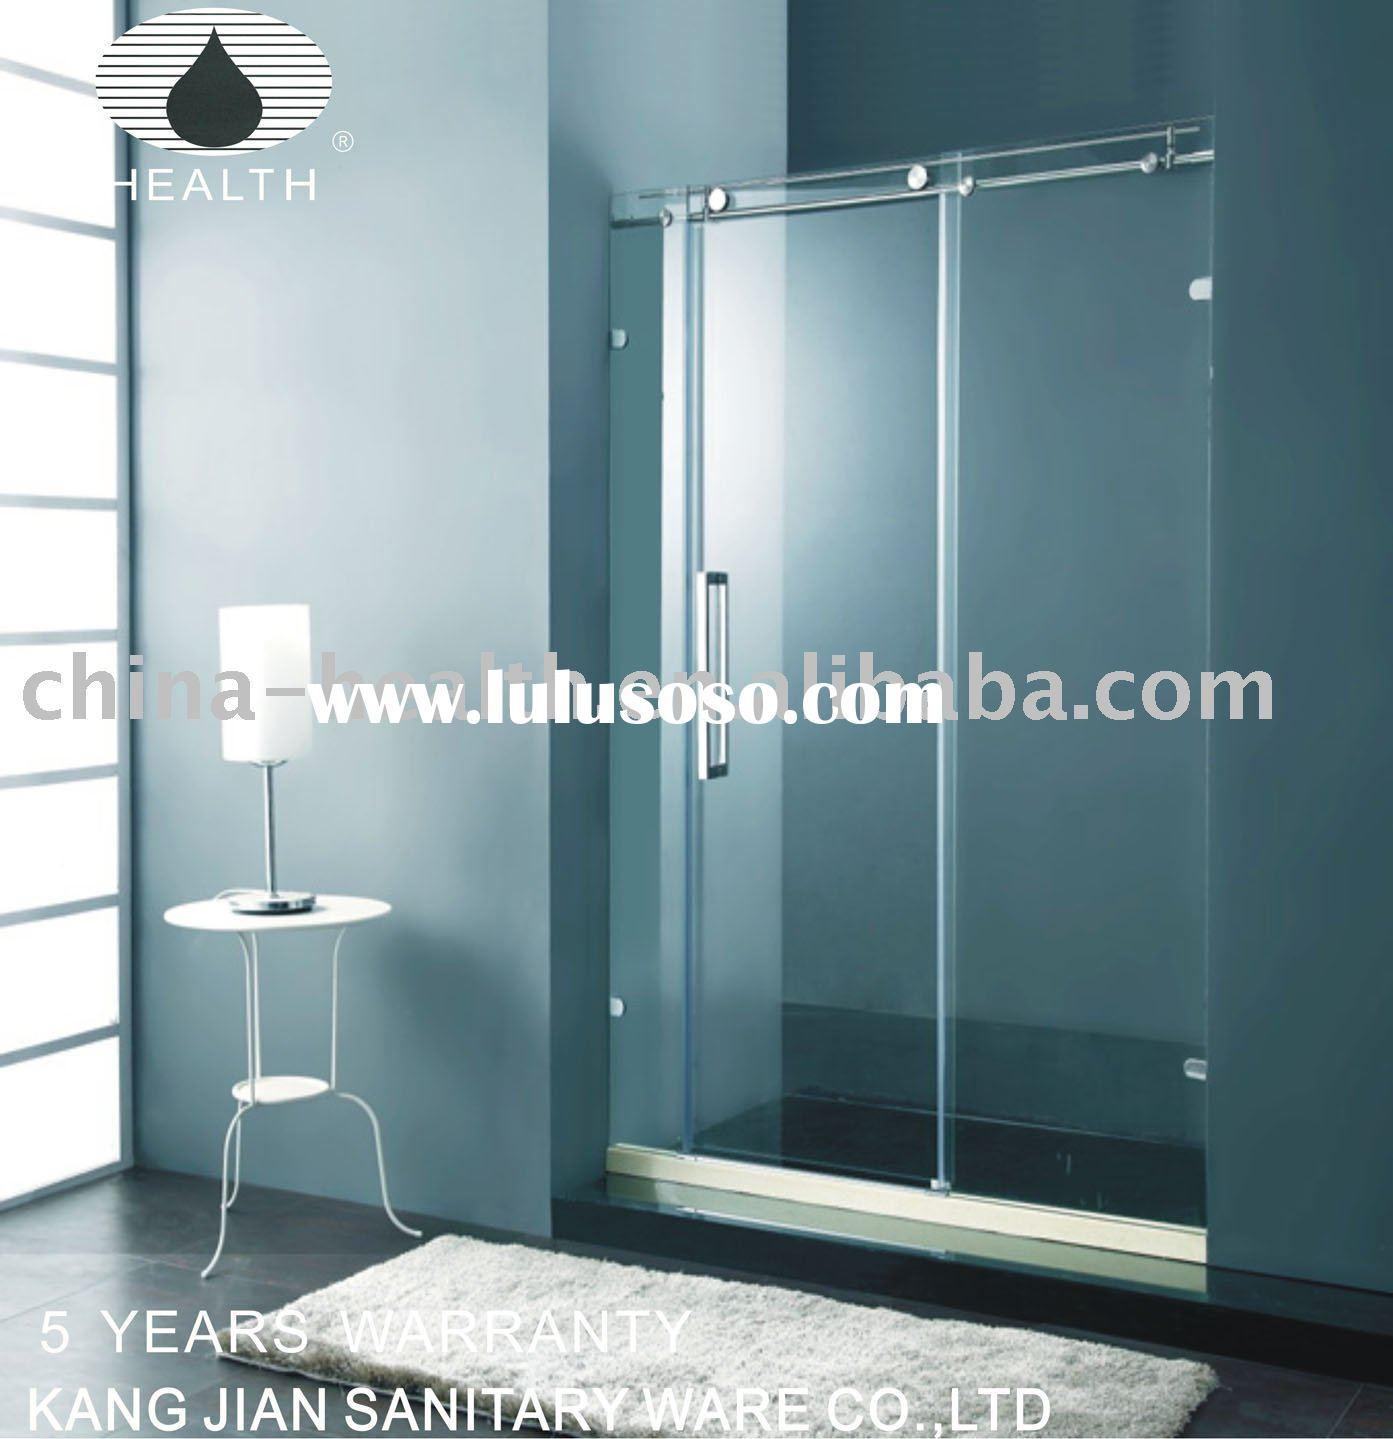 Disadvantage Of Frameless Shower Screen Using 8mm Thick